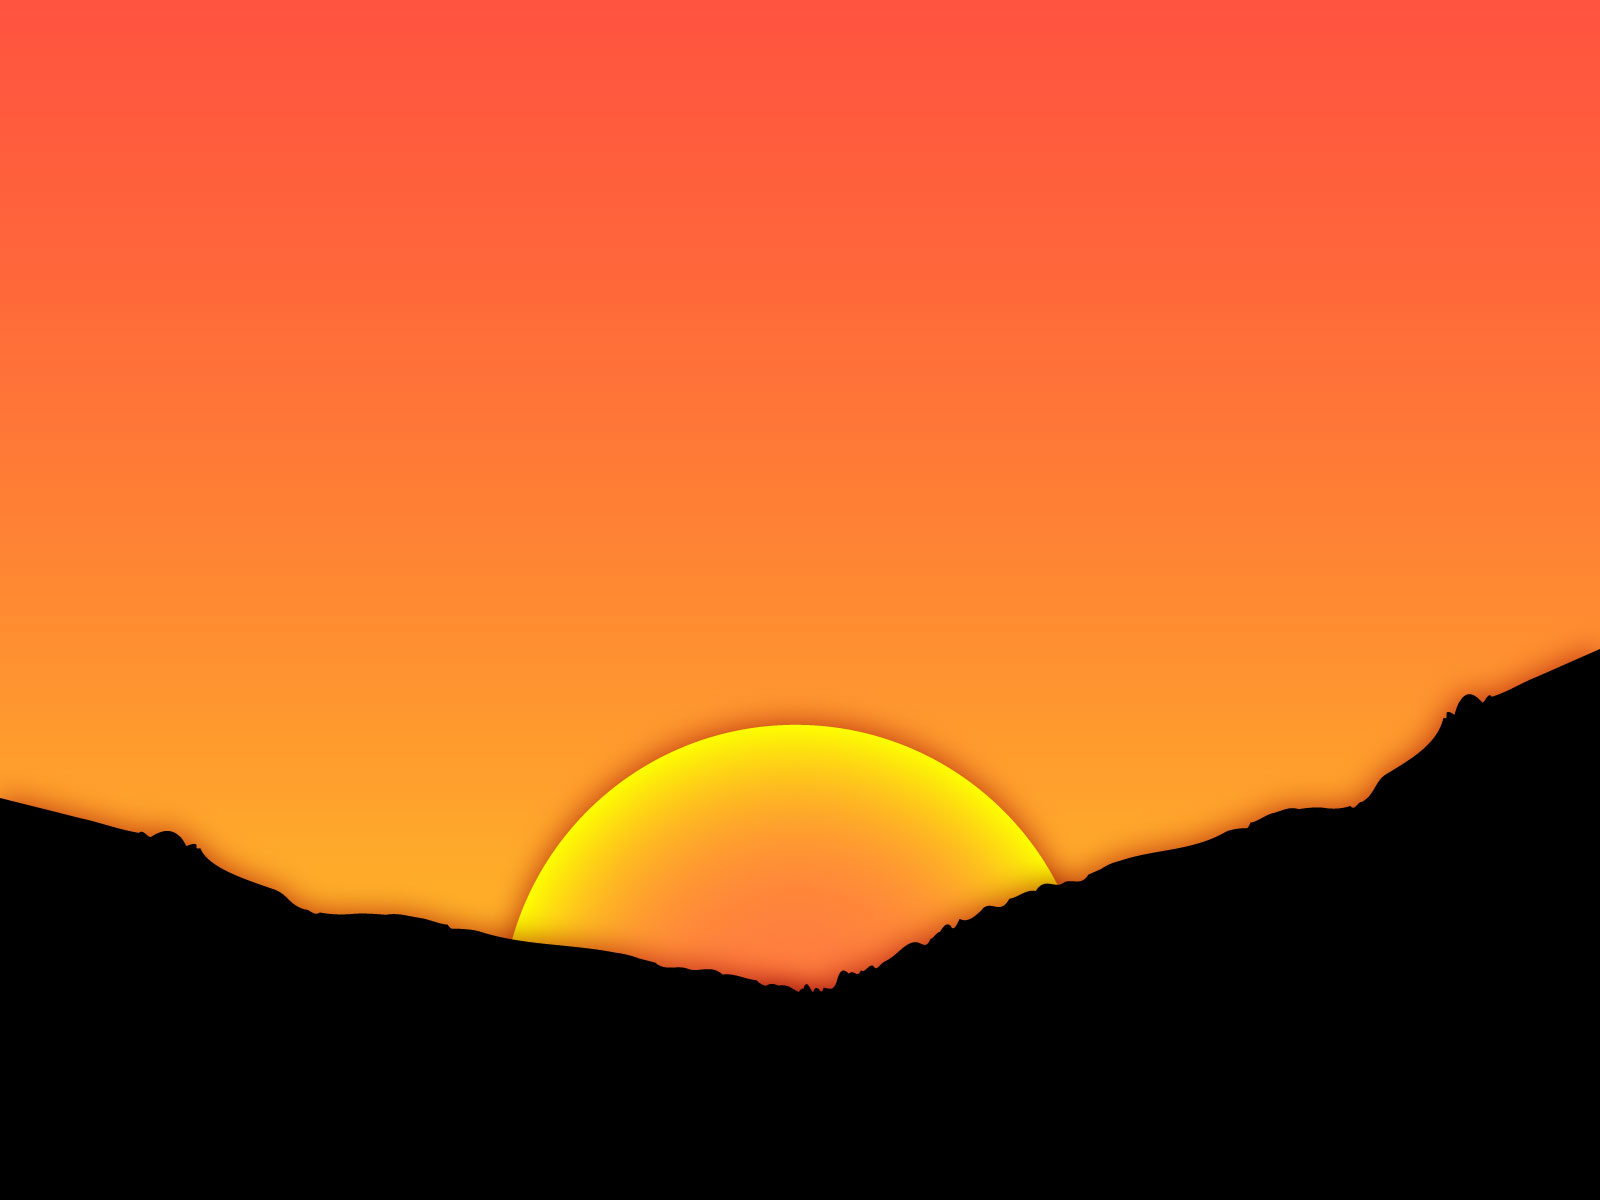 Sunset clipart #15, Download drawings